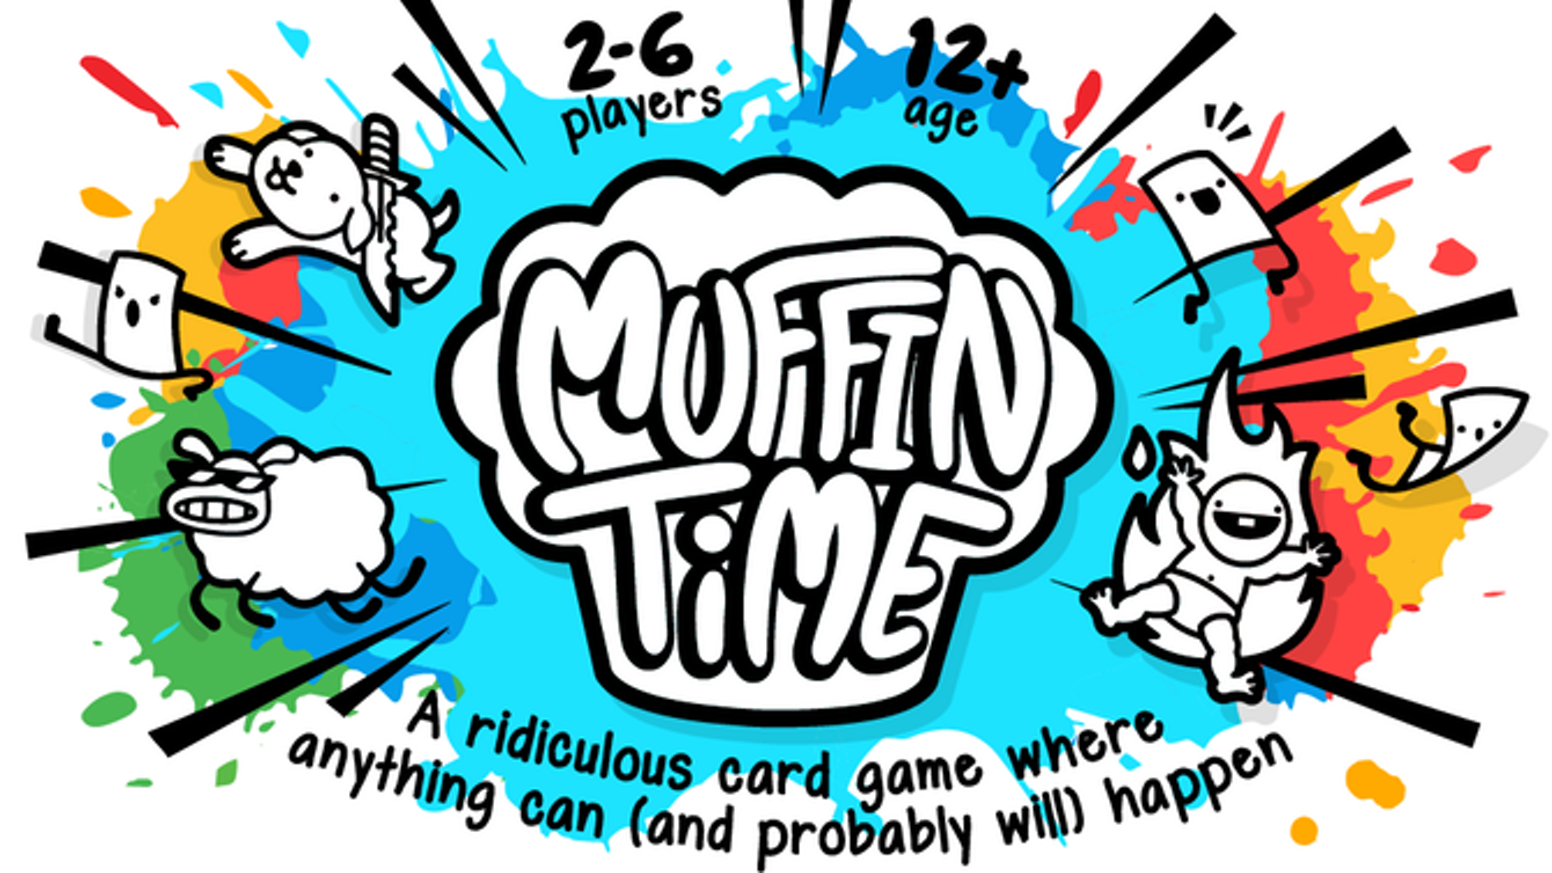 Collect cards, trigger traps, and murder muffins in the asdfmovie-themed card game.